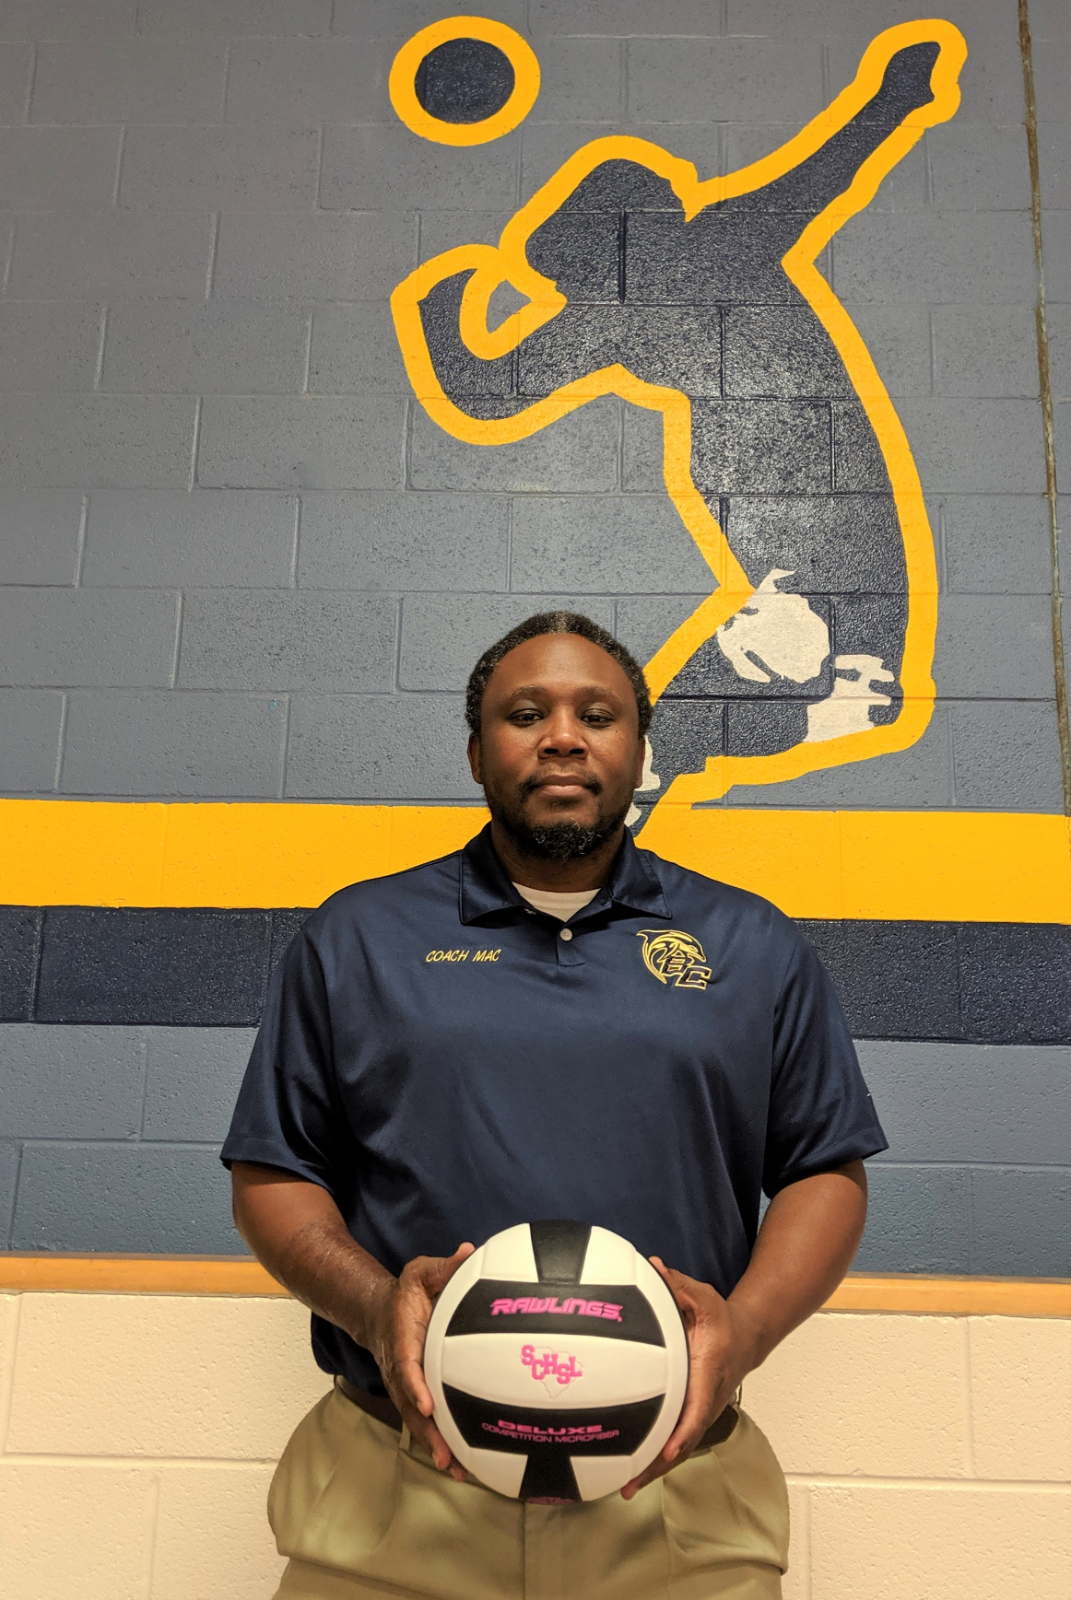 McCullough Selected to Coach in North/South All-Star Volleyball Match